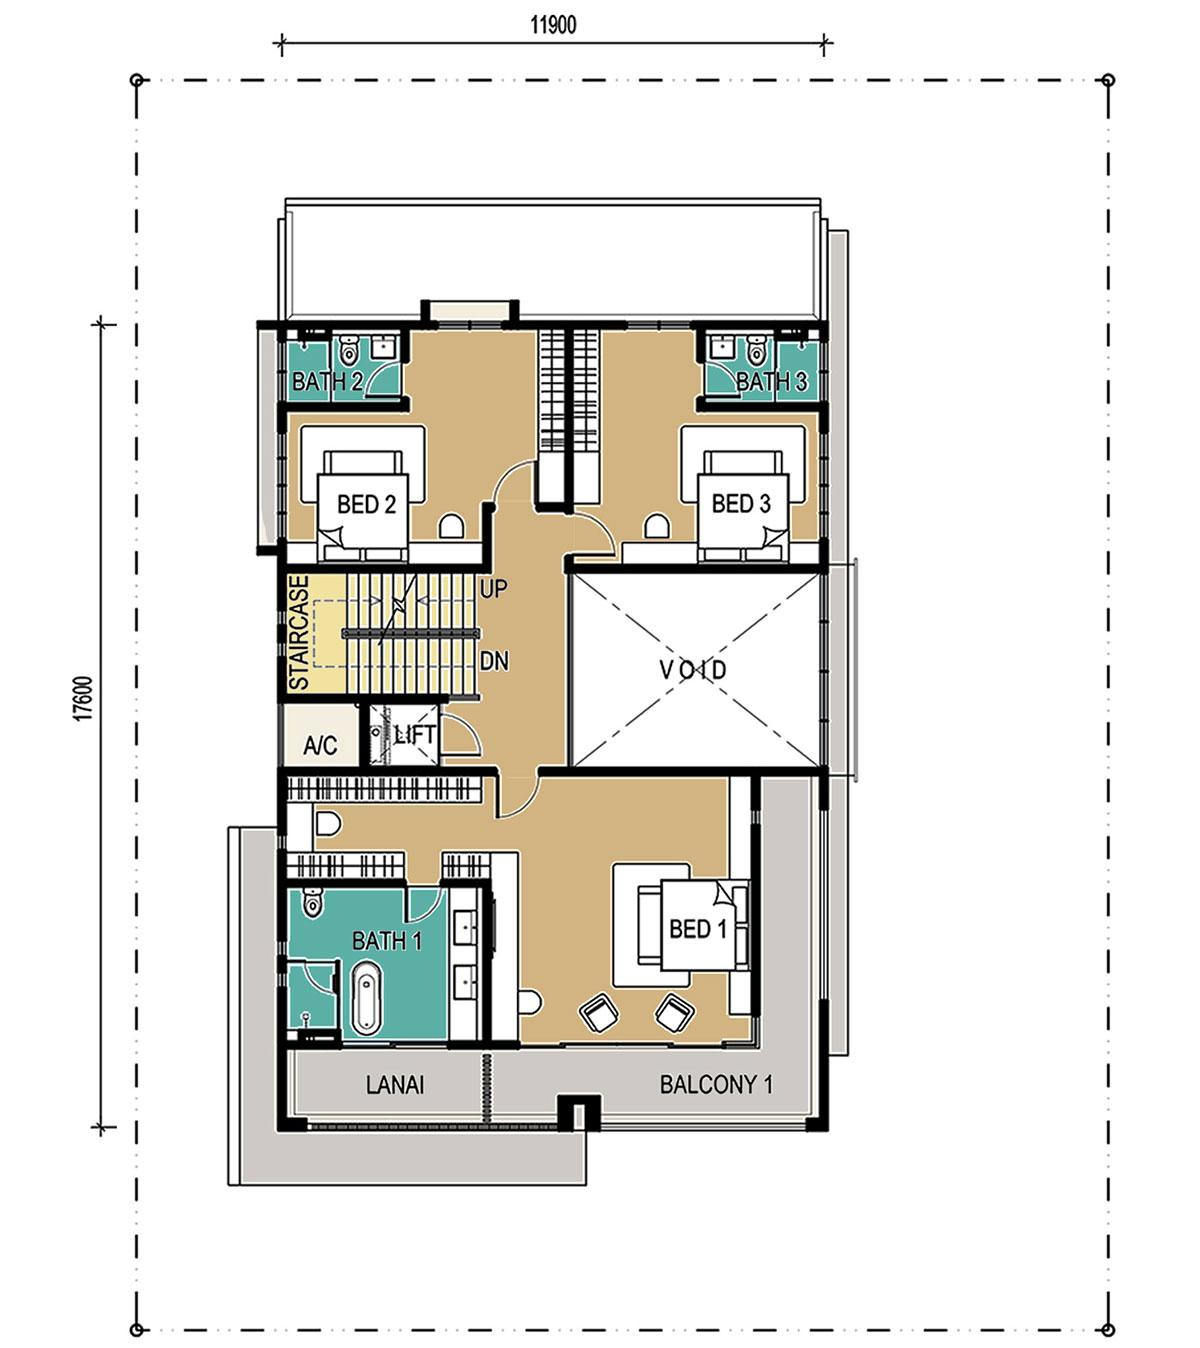 3-Storey - Bungalow - First Floor